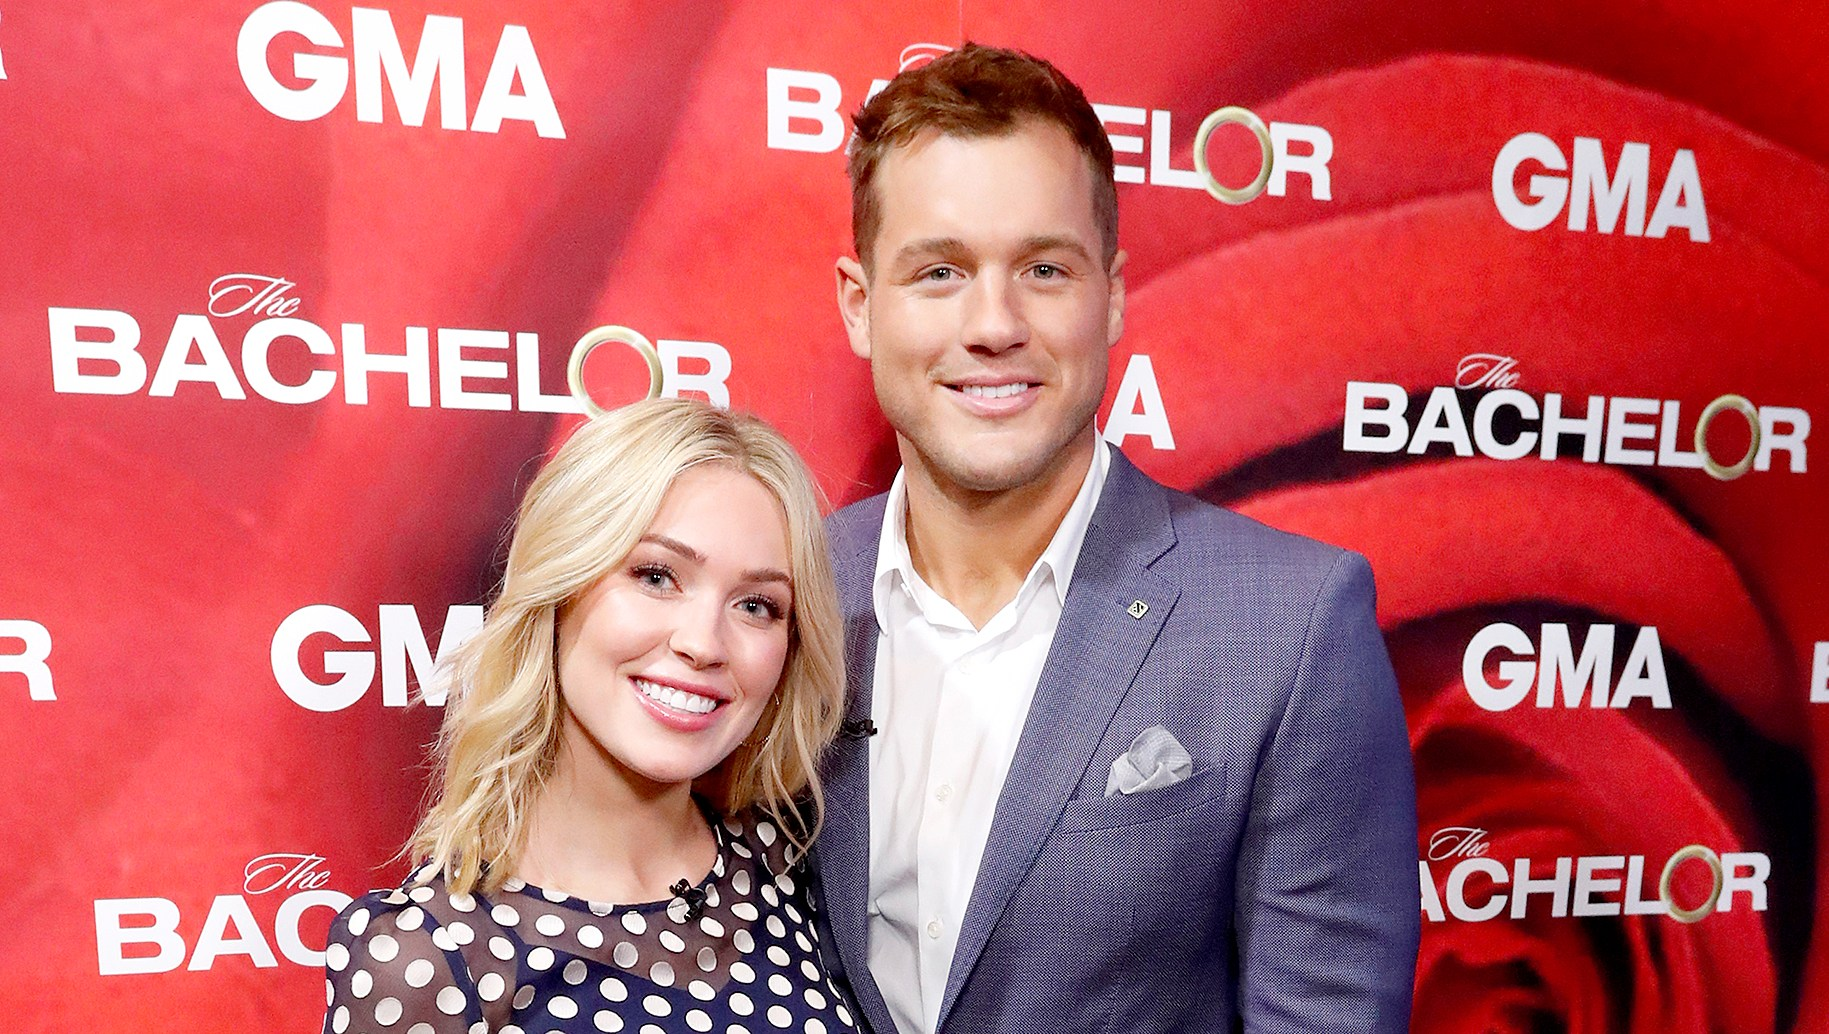 Colton-Underwood-and-Cassie-Randolph-living-apart